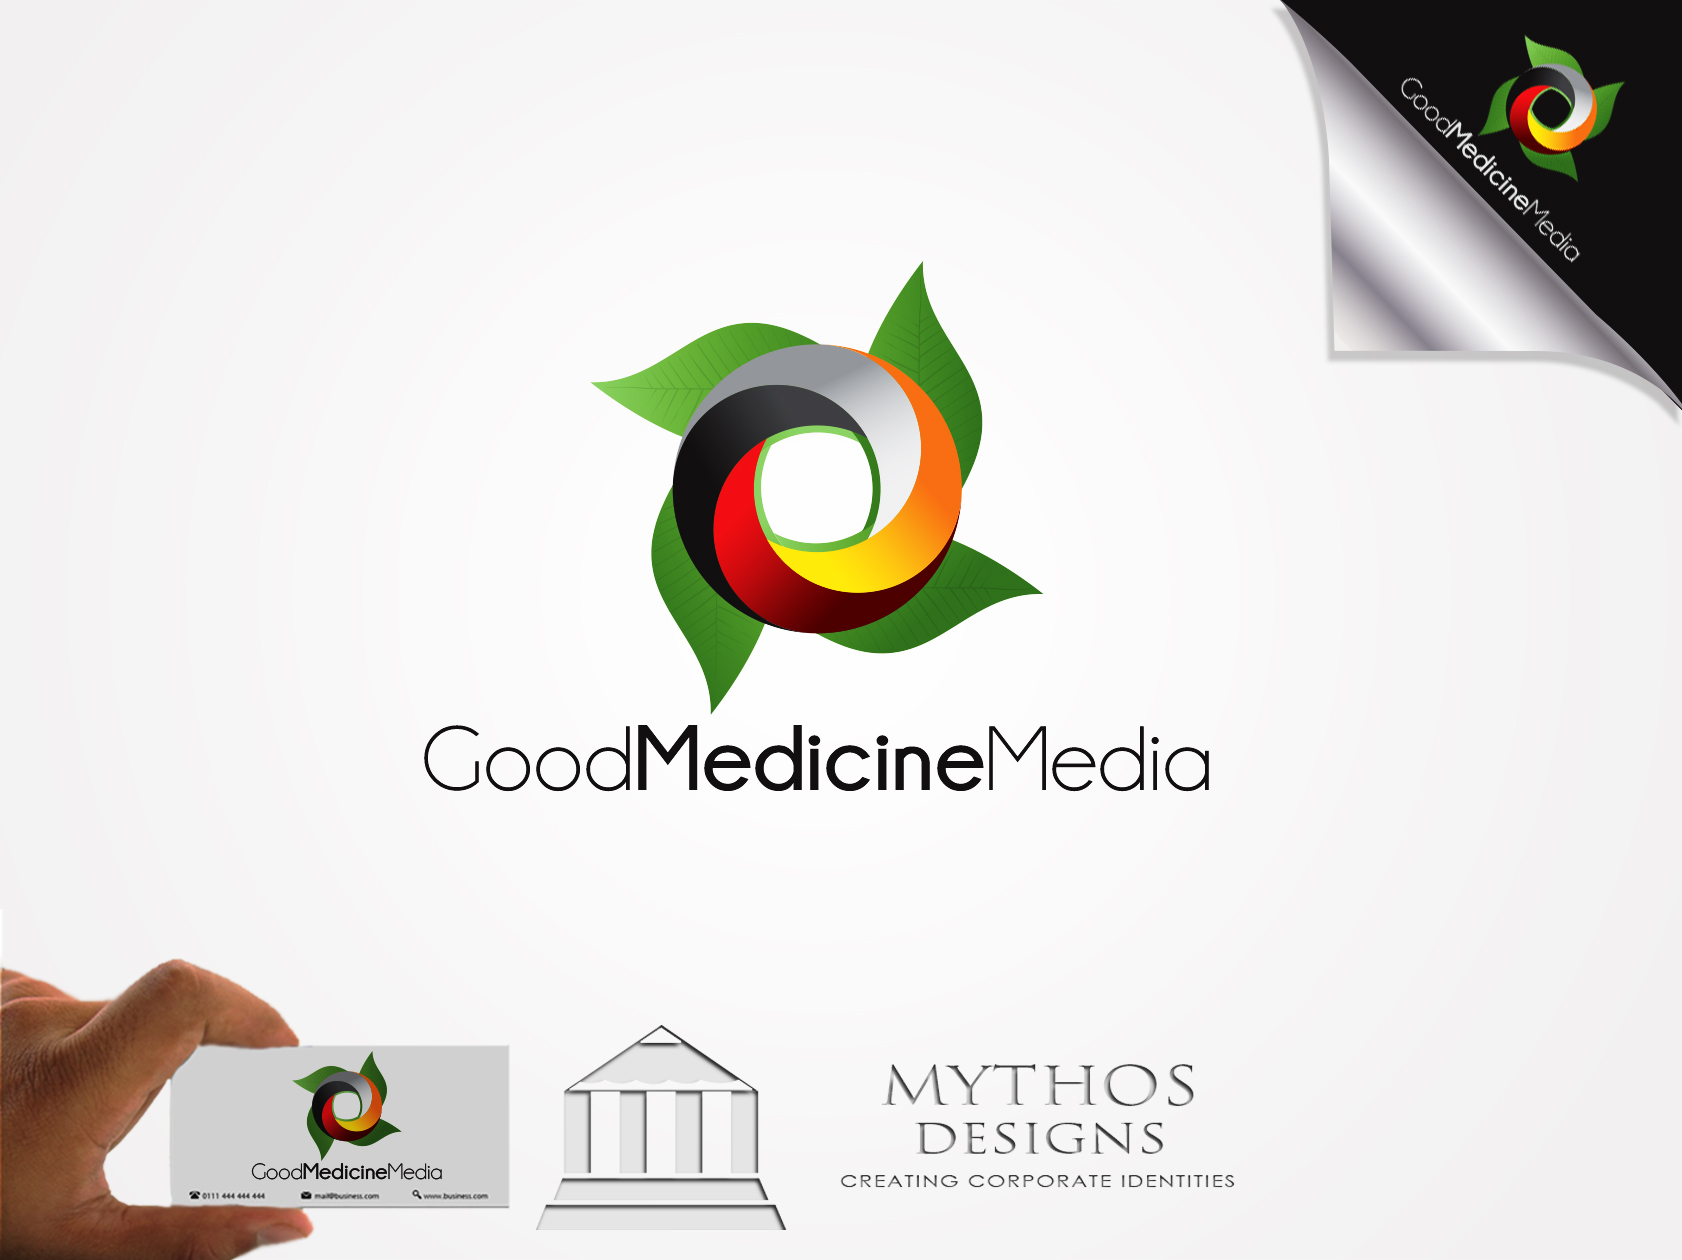 Logo Design by Mythos Designs - Entry No. 233 in the Logo Design Contest Good Medicine Media Logo Design.